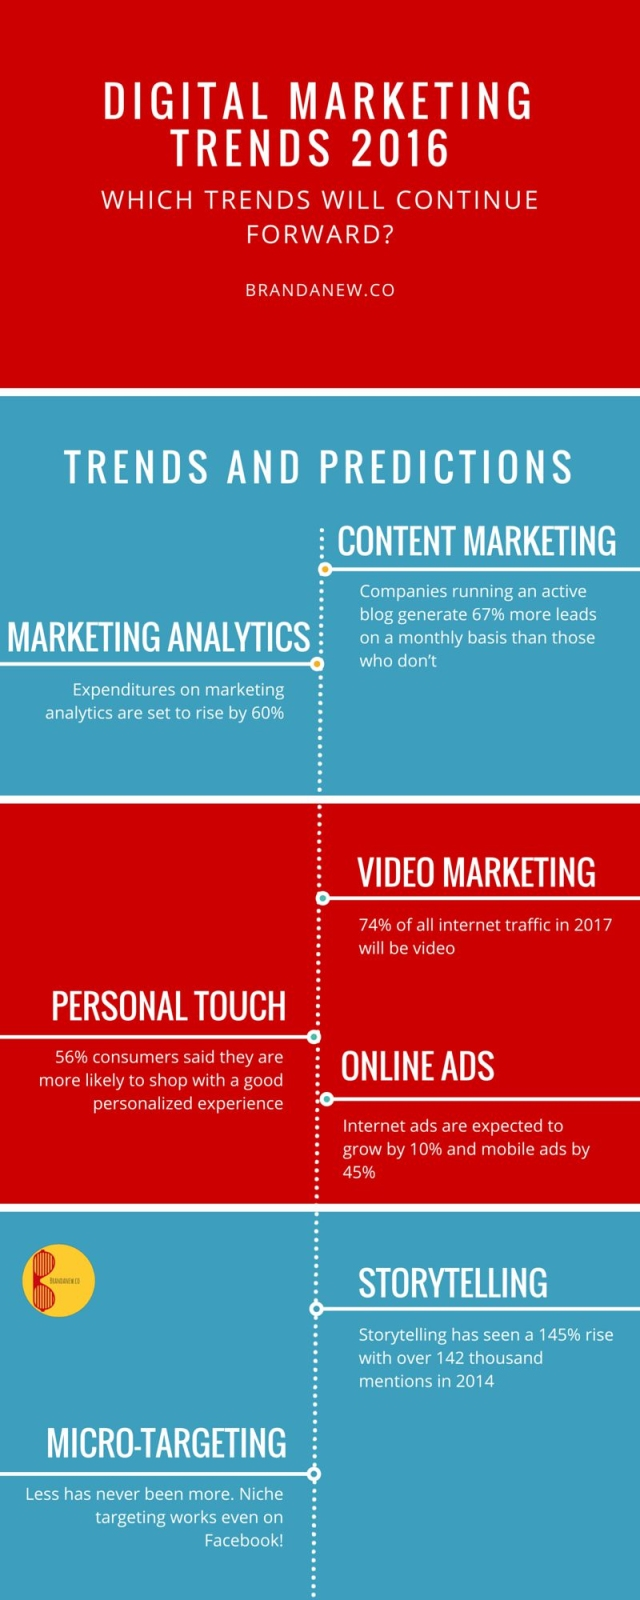 Can You Adapt How Digital Marketing Could Change in 2016